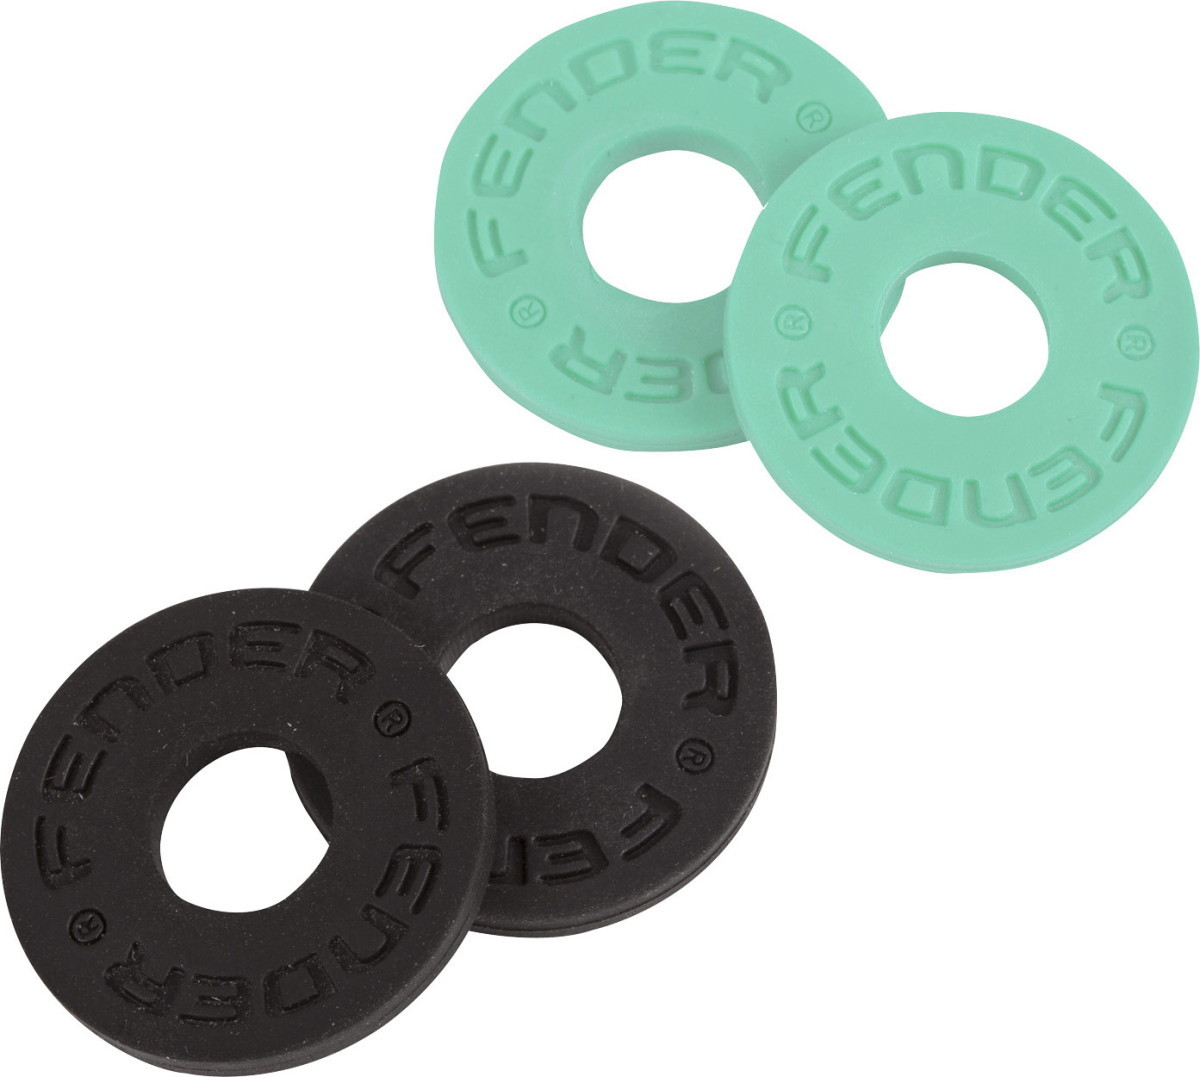 Fender Strap Blocks 4-Pack Black  and Surf Green 【WEBSHOP】